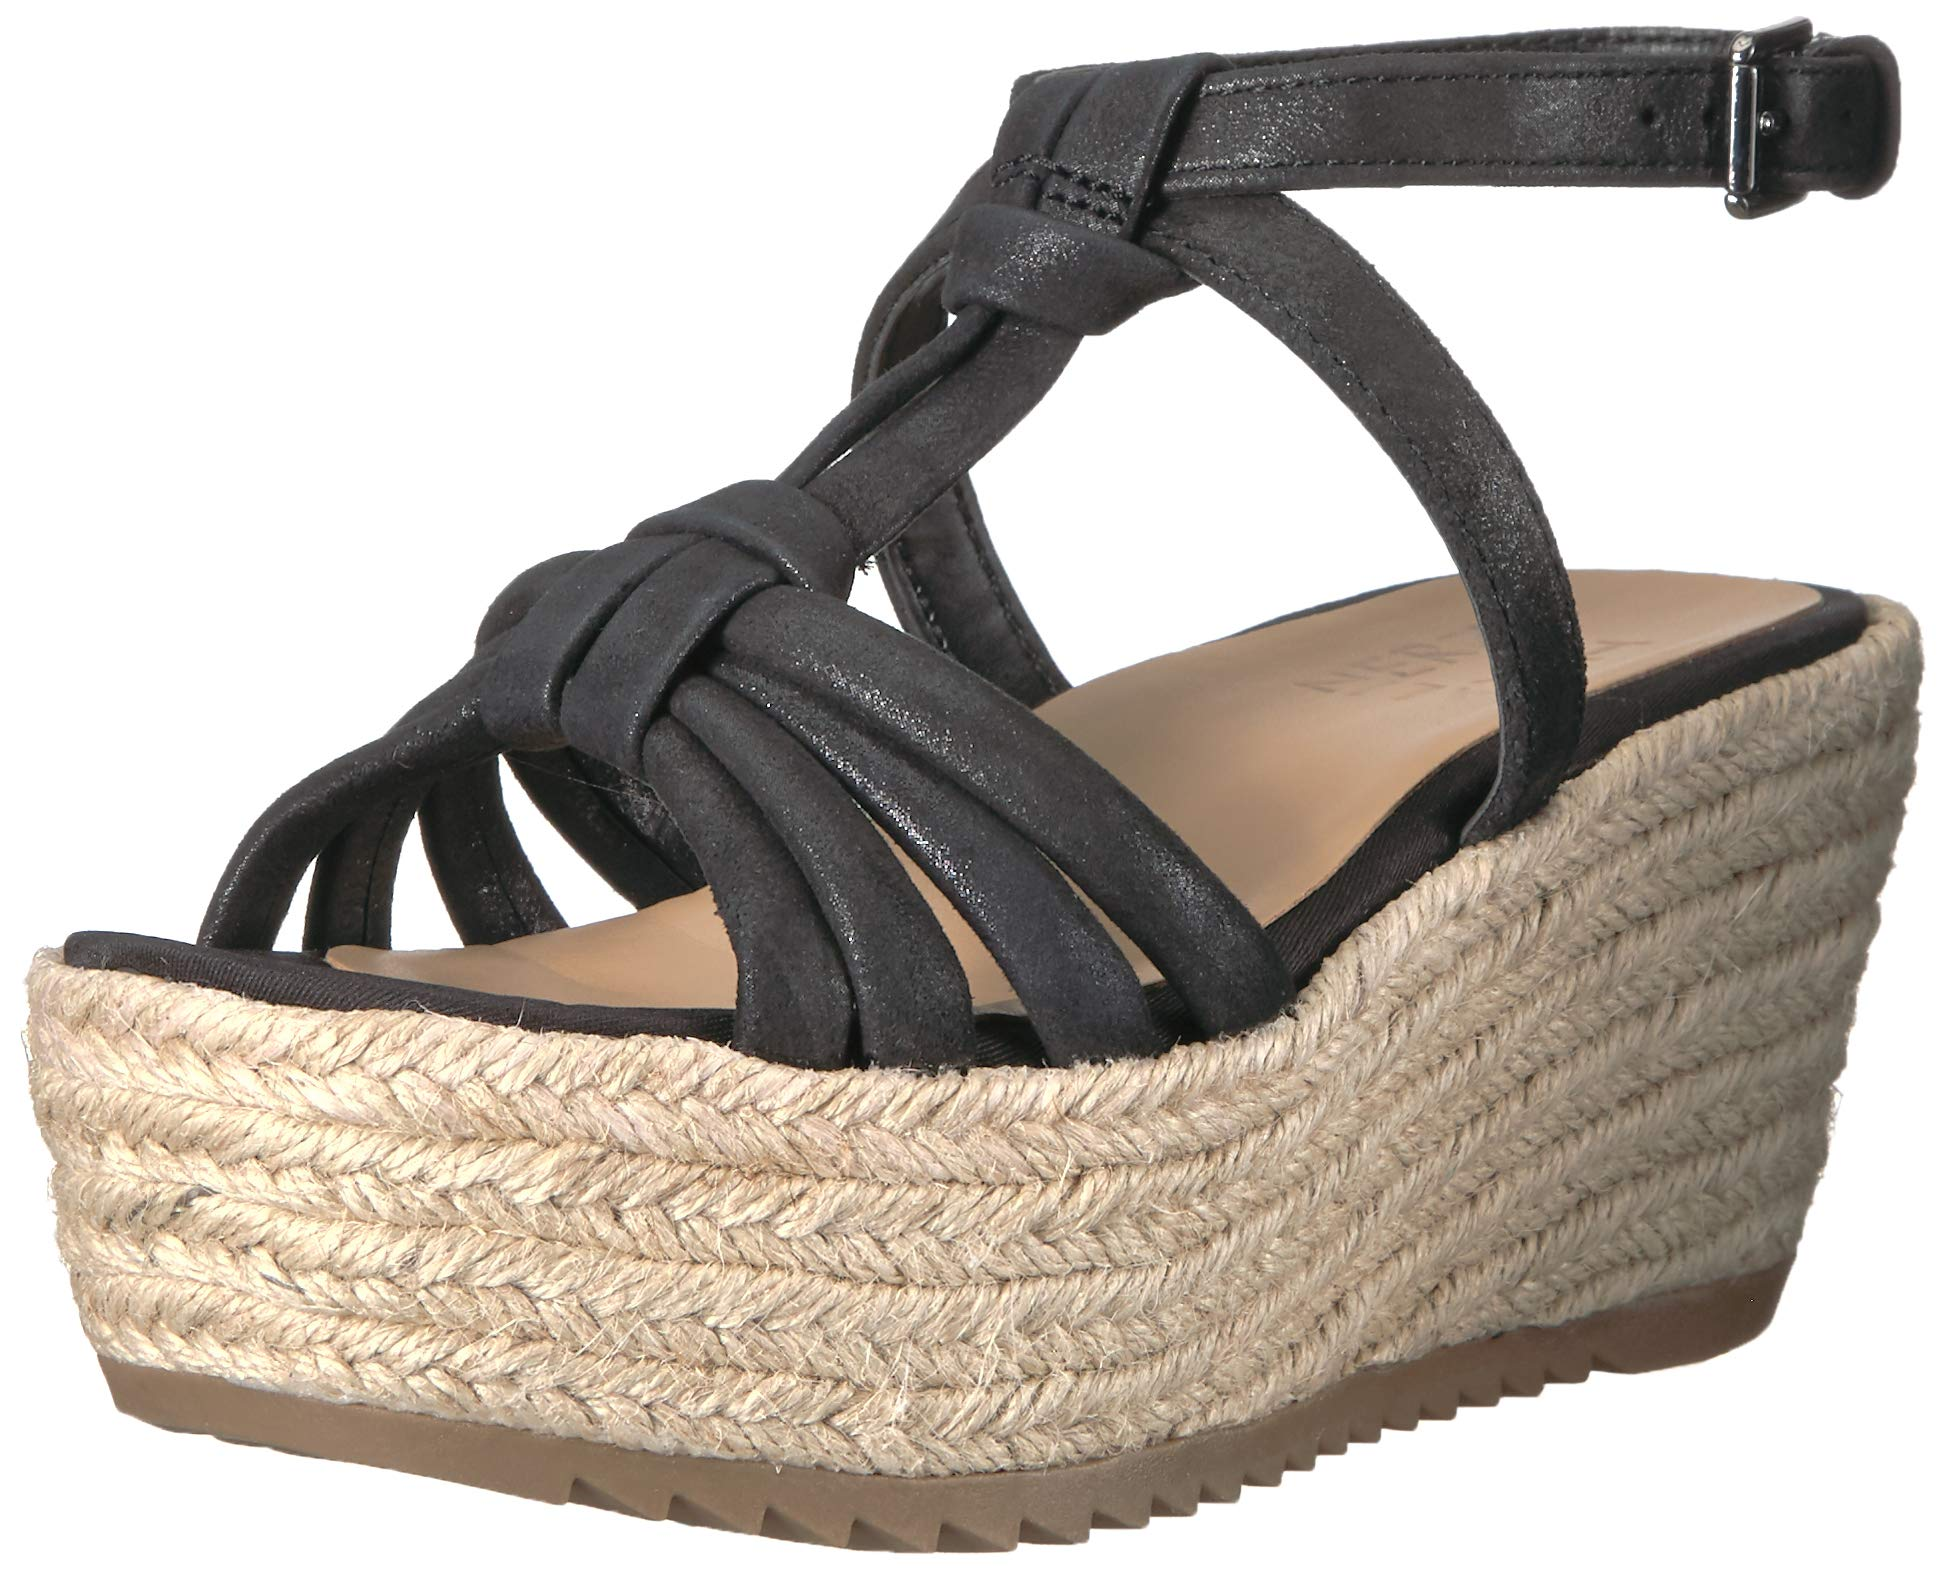 Naturalizer Women's ODINA Espadrille Wedge Sandal, Black, 8 M US by Naturalizer